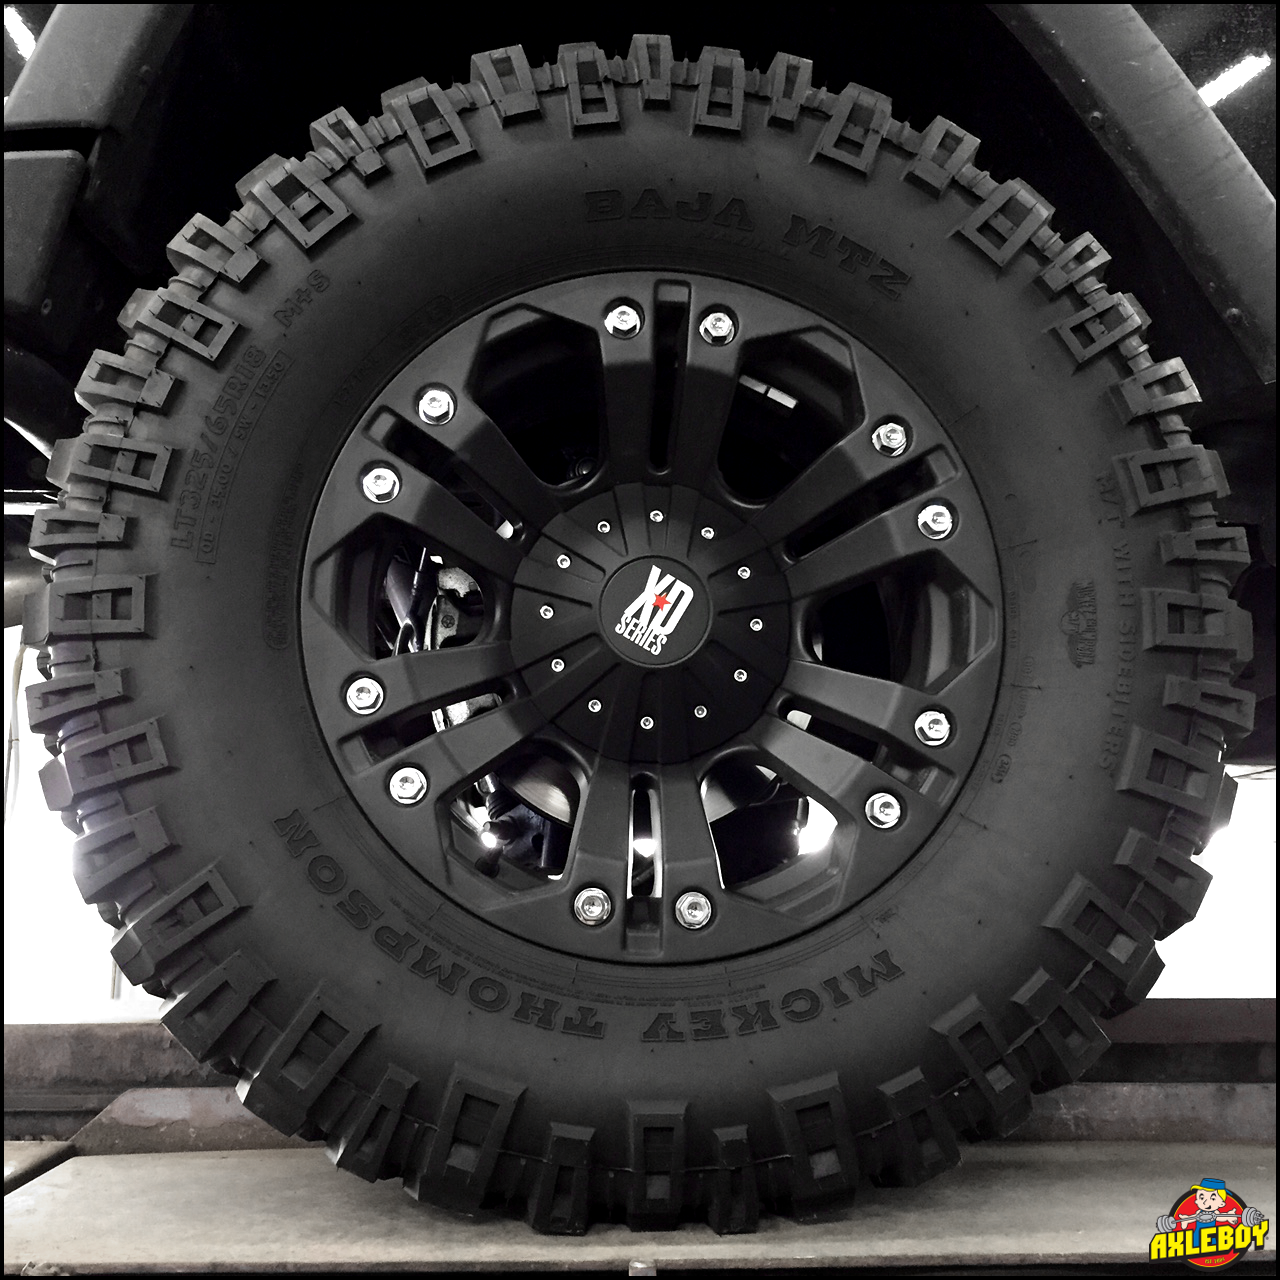 Mickeythompson 325x65r18 Mtz Tires Mounted On Xdseries Wheels At Axleboy Truck Wheels New Chevy Silverado Jeep Wrangler Rubicon